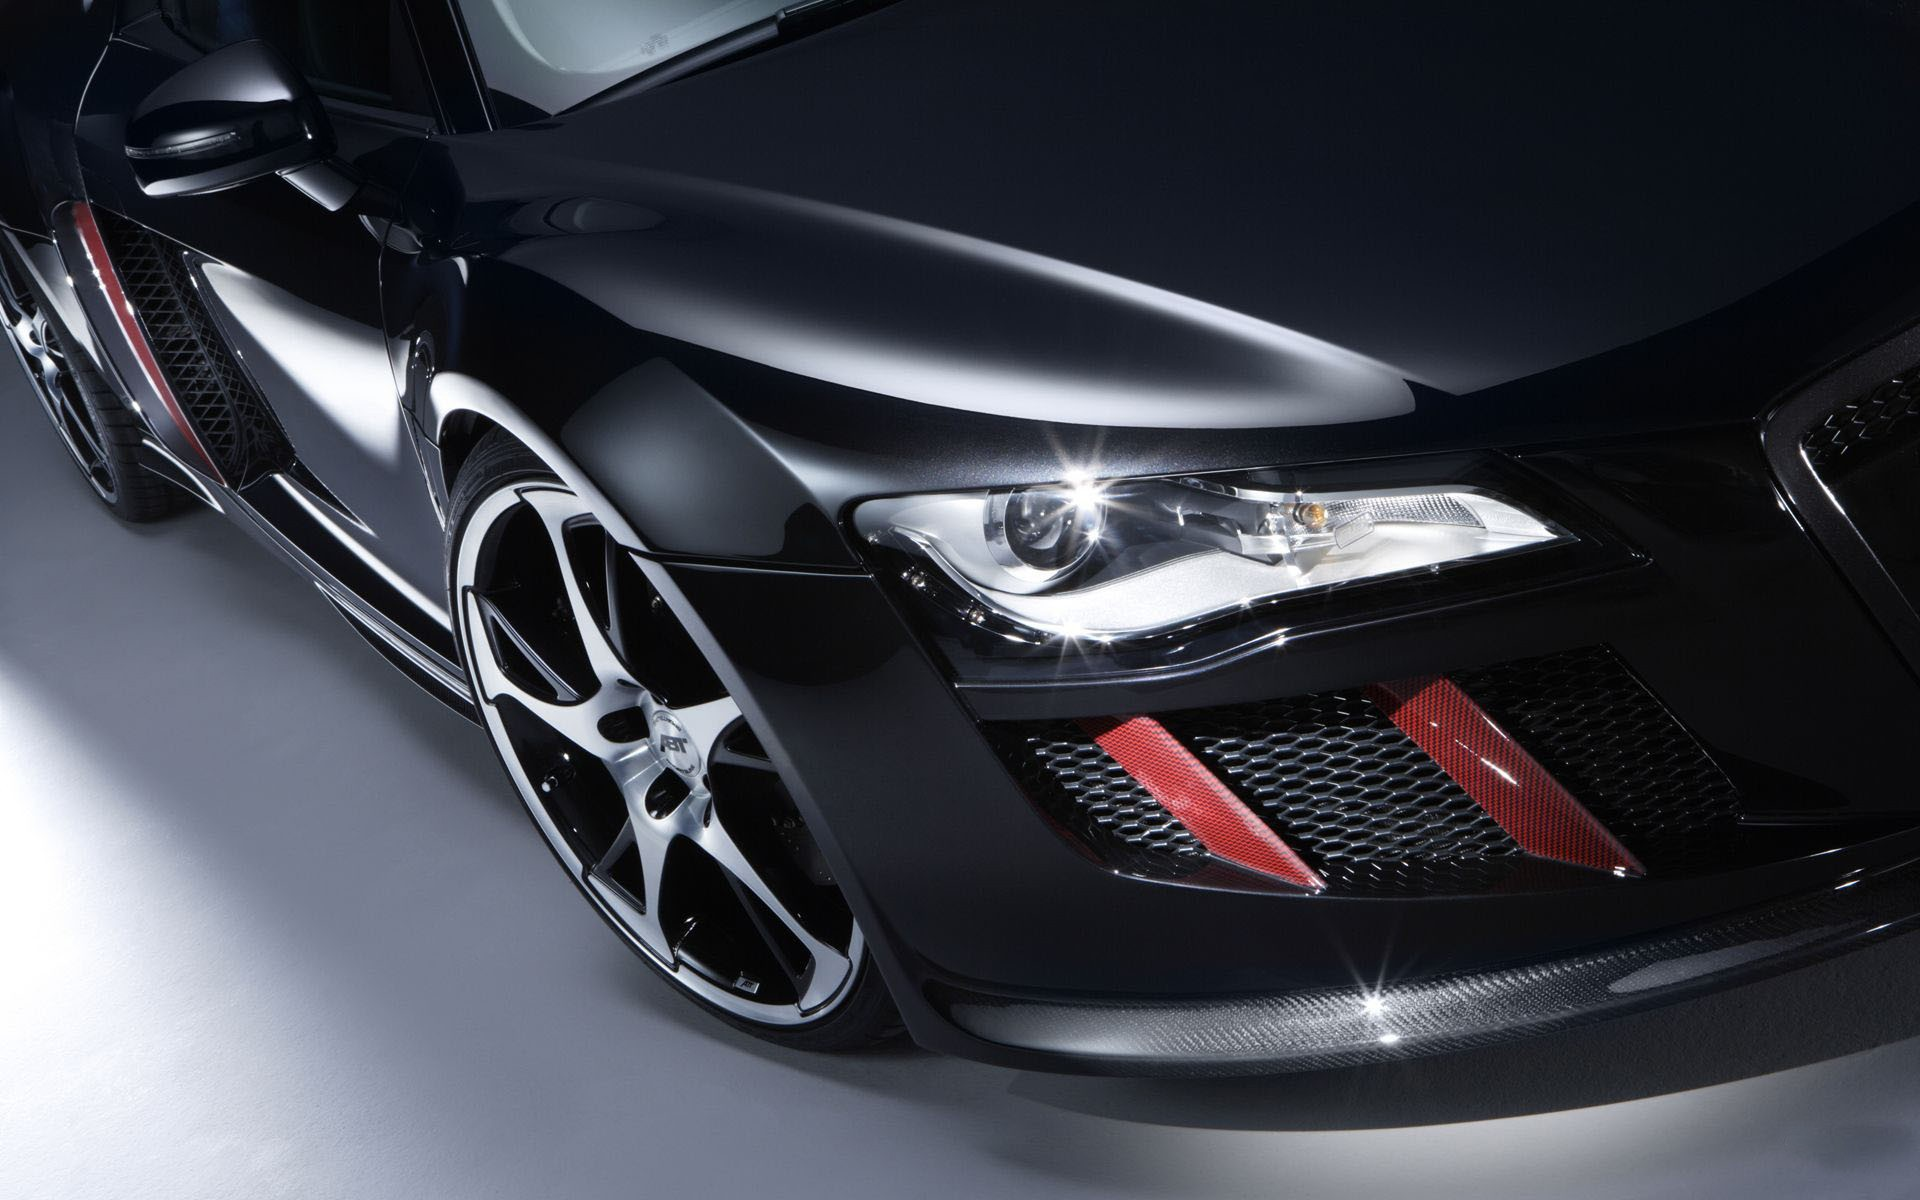 Headlight black Audi R8, car picture 1920x1200.